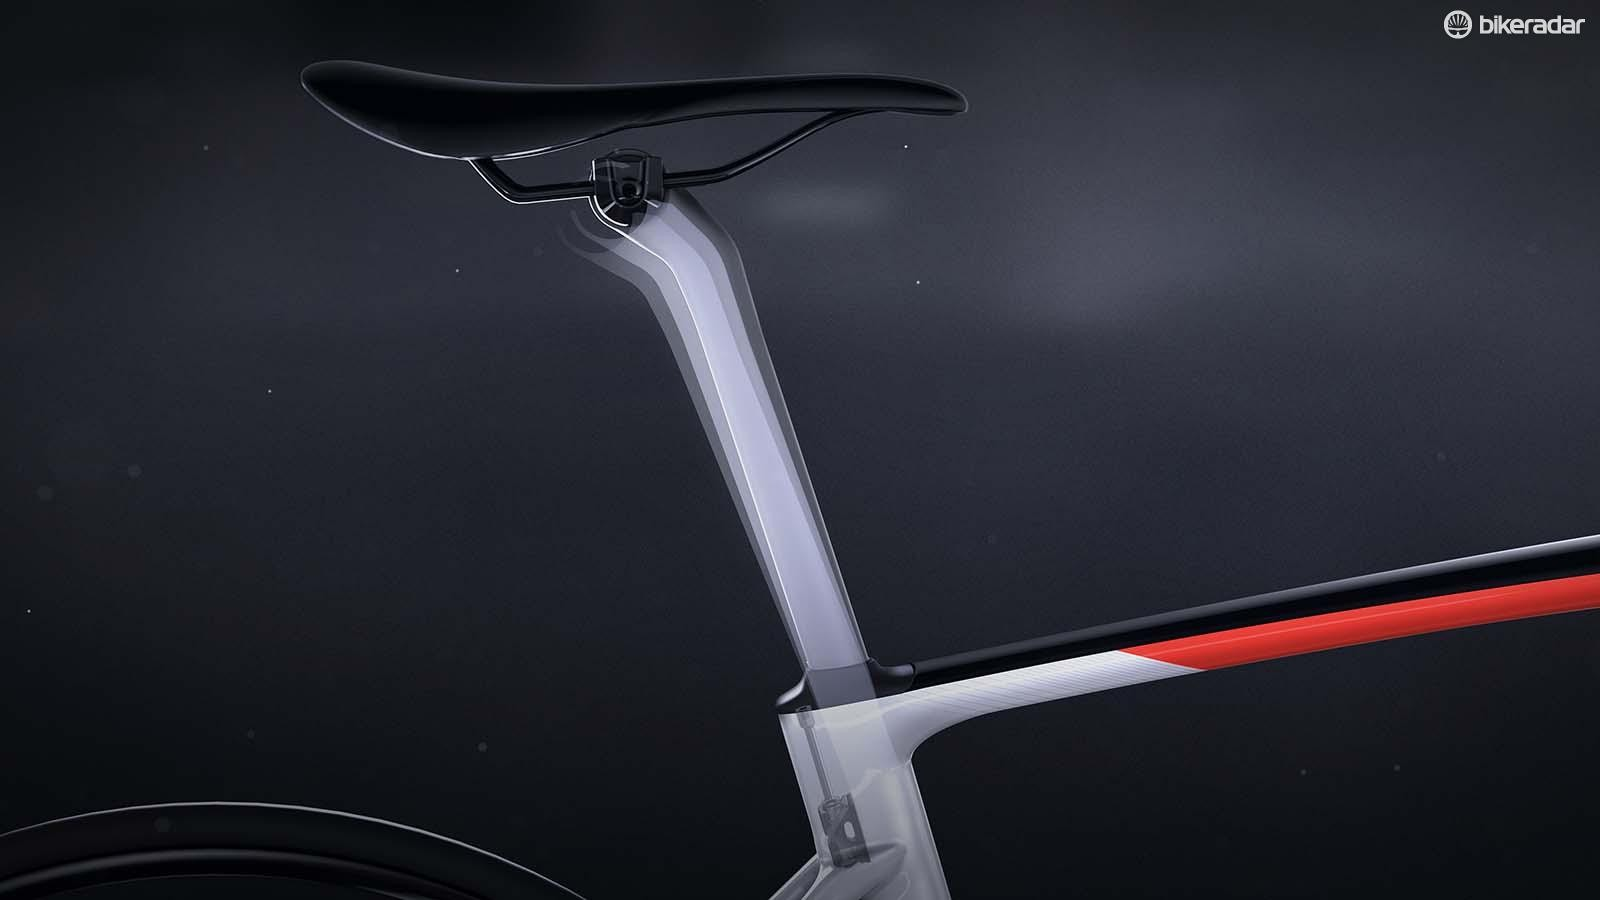 The S-Works Pavé post moves fore and aft to absorb shock